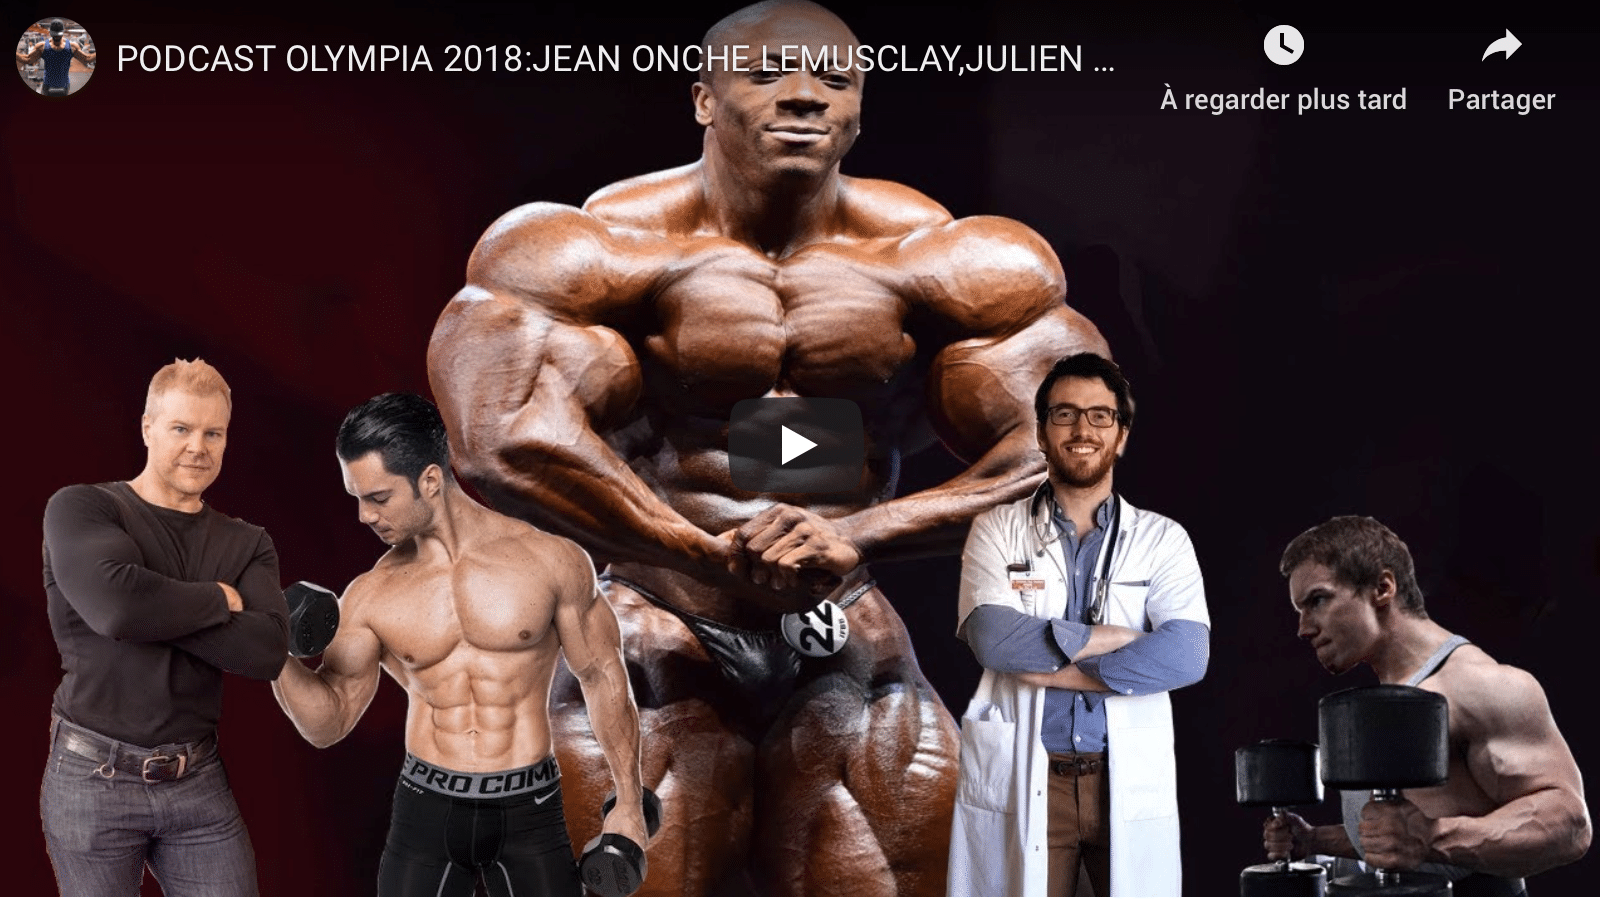 podcast mister olympia